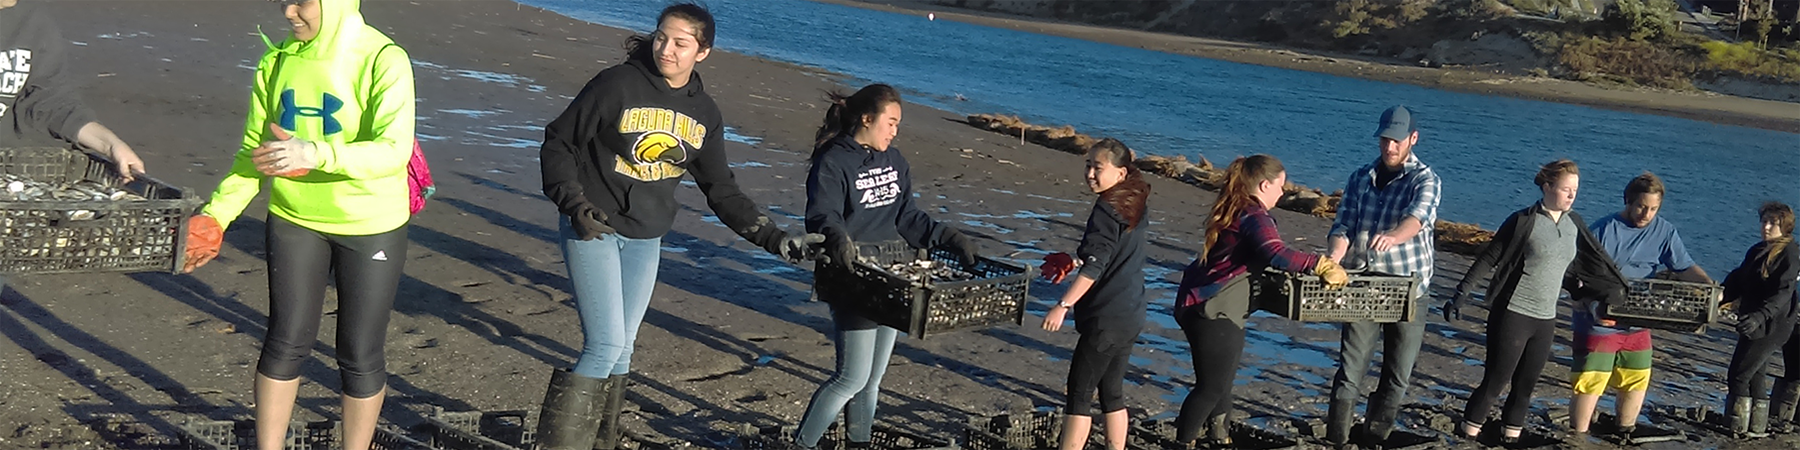 For the first time, more than 150 volunteers hauled 20 tons of Pacific oyster shell in hand-sewn coconut fiber bags to restore Upper Newport Bay as part of our Living Shorelines project.